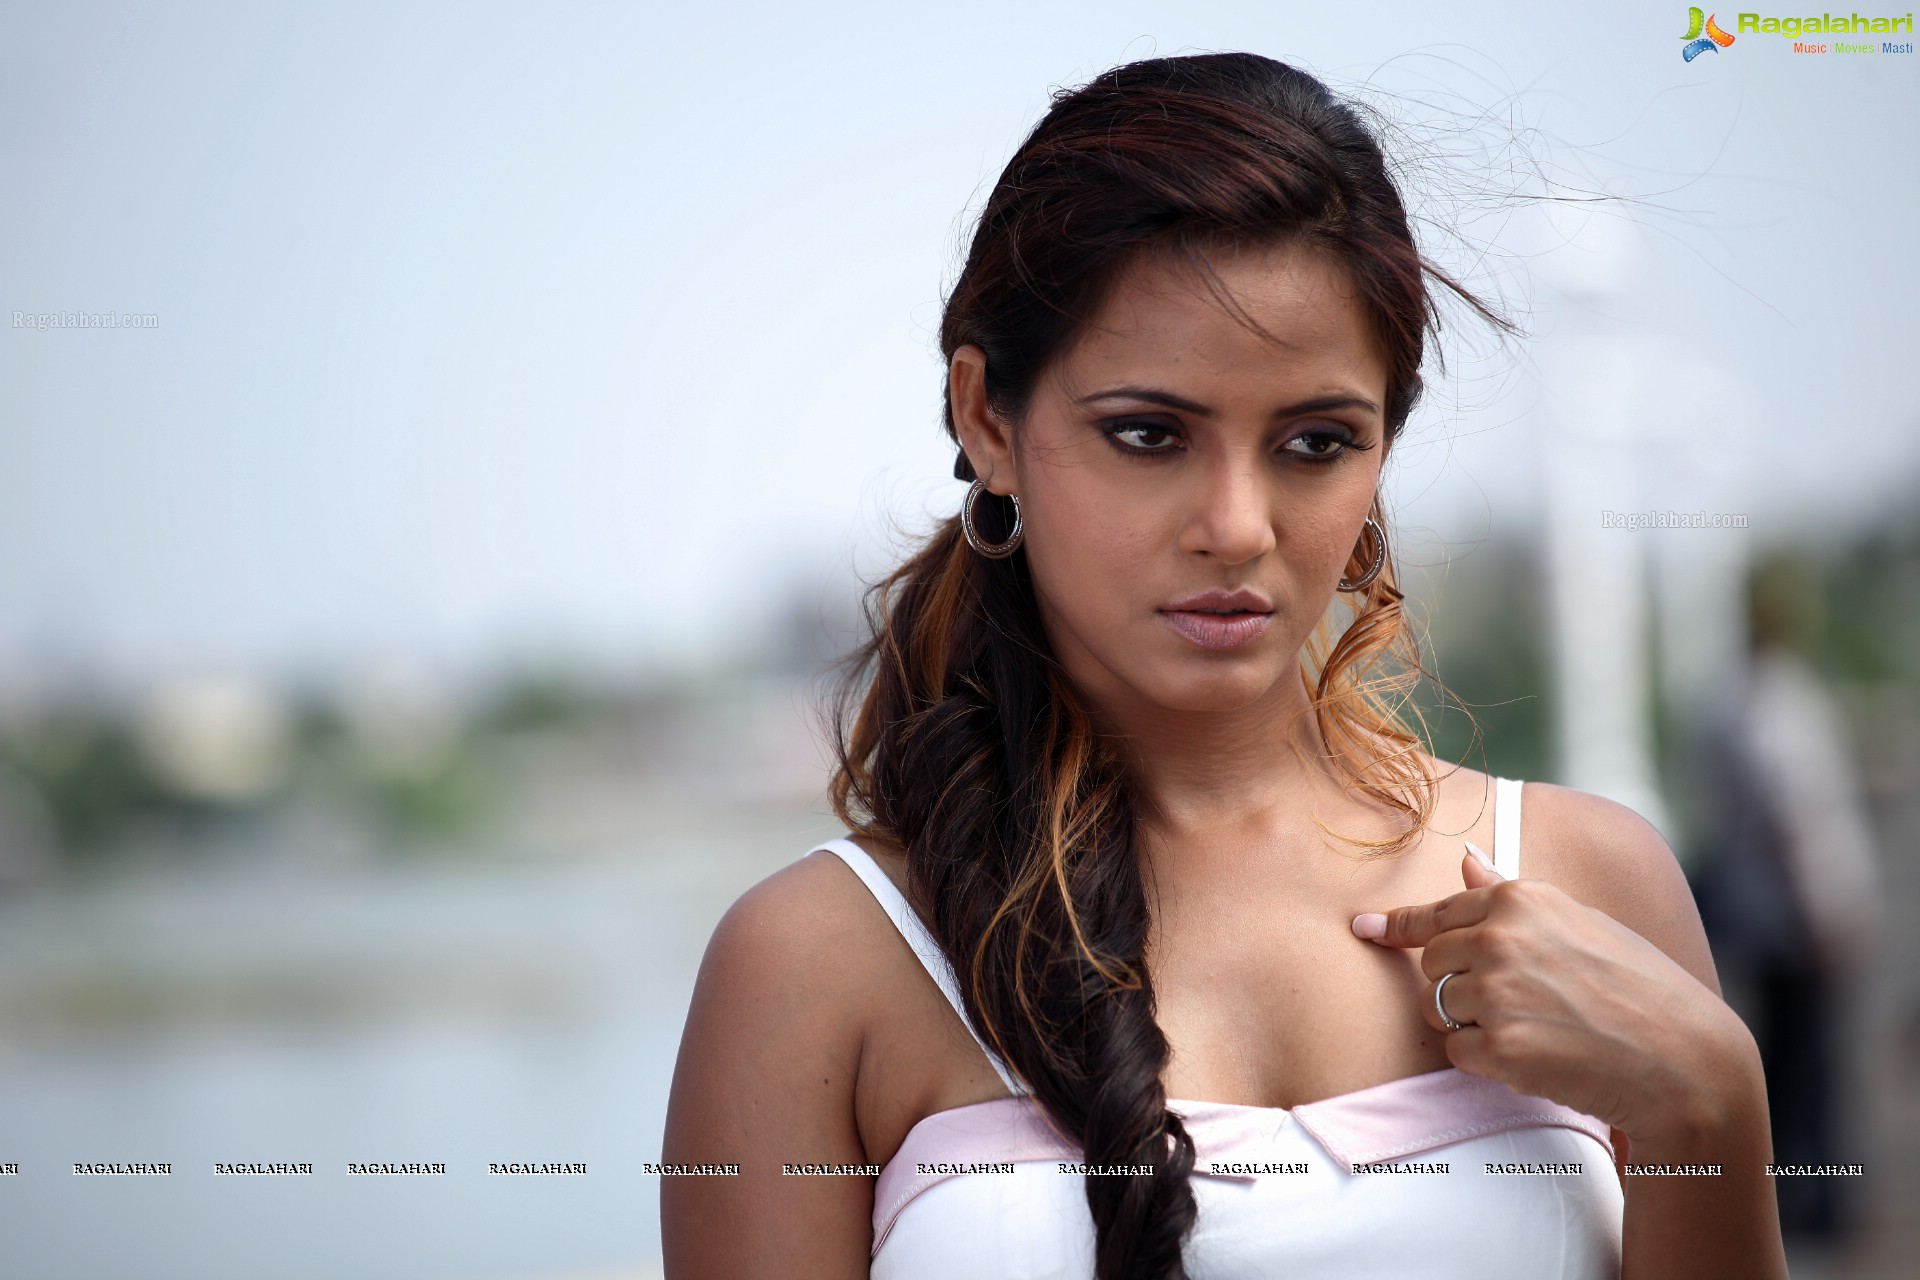 Neetu Chandra Hd Image 166 Tollywood Actress Hot